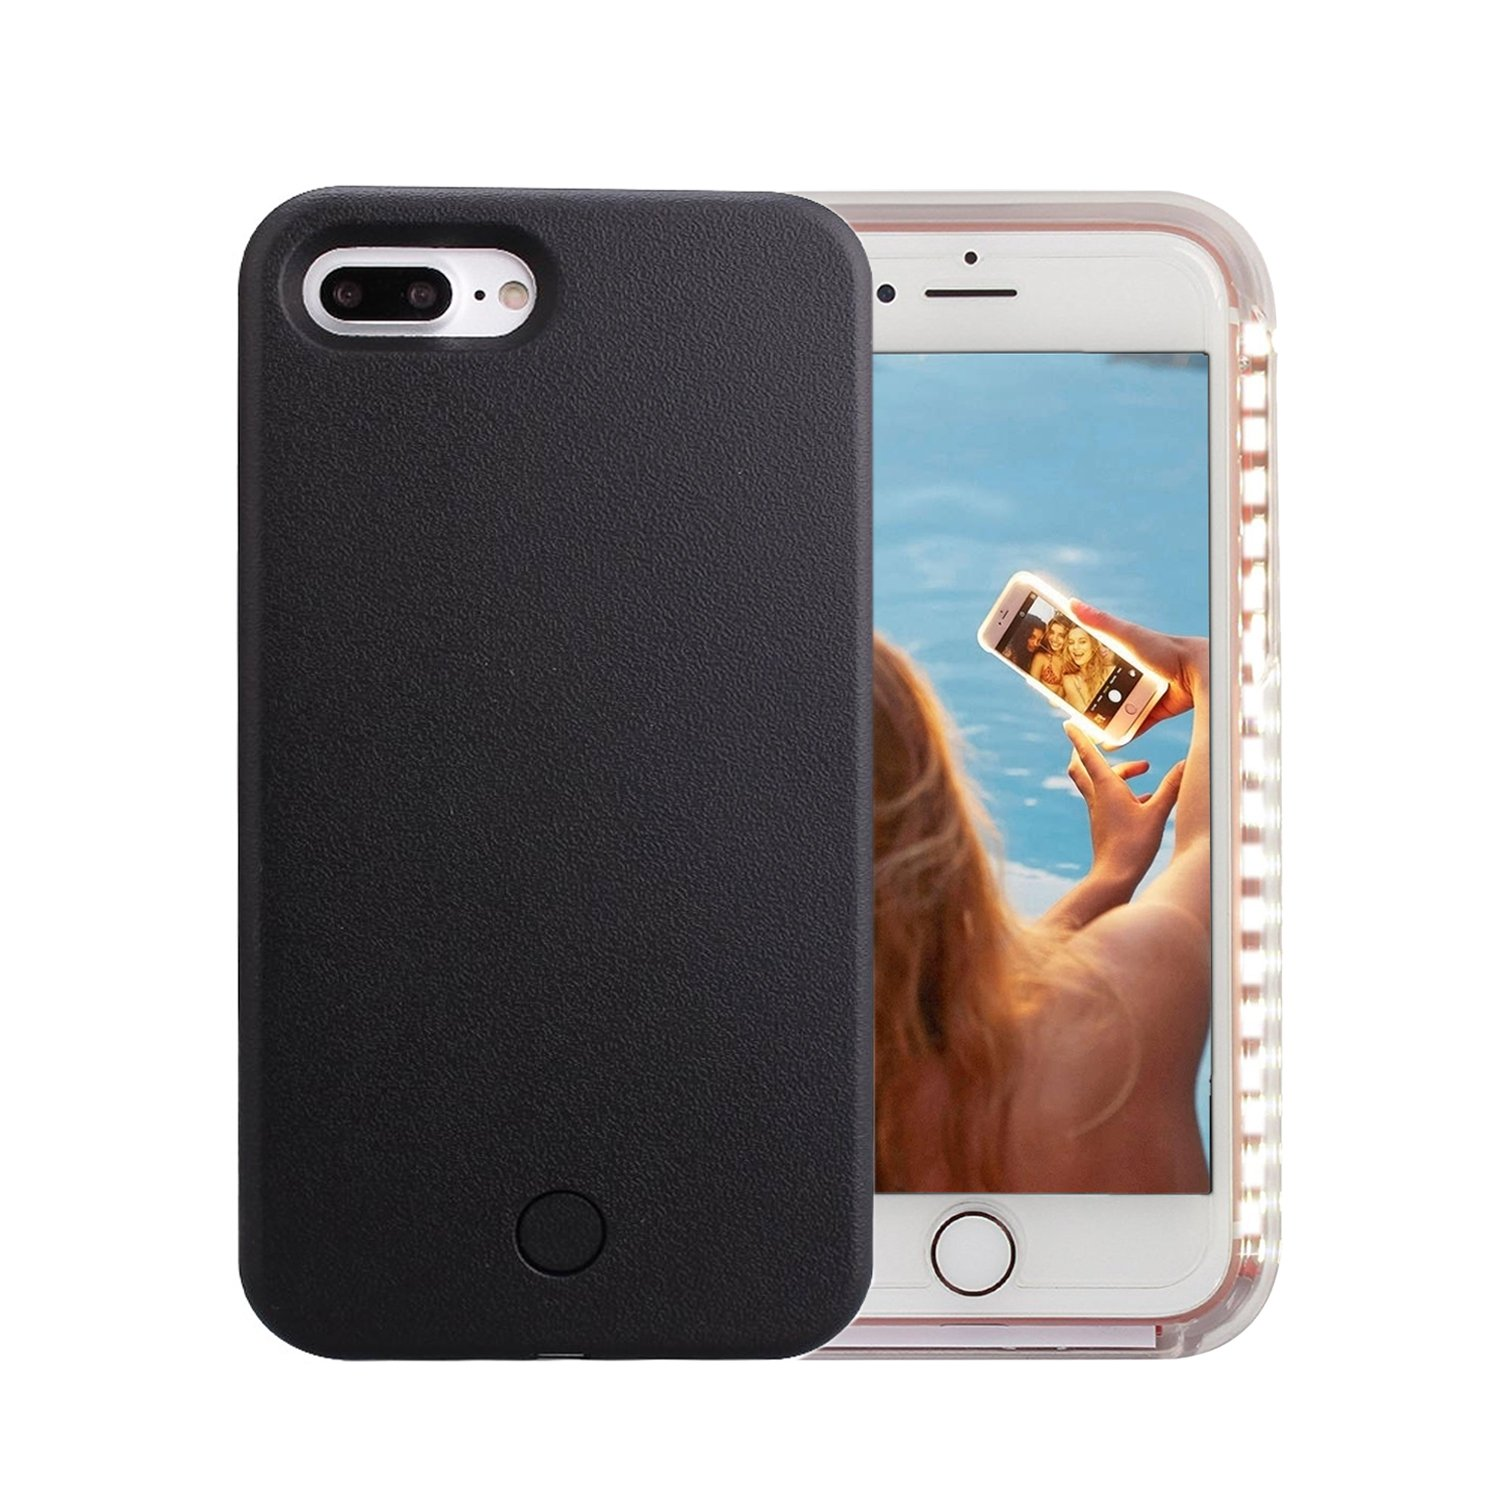 Funda con led para iPhone 7 Plus y iPhone 8 Plus recargable